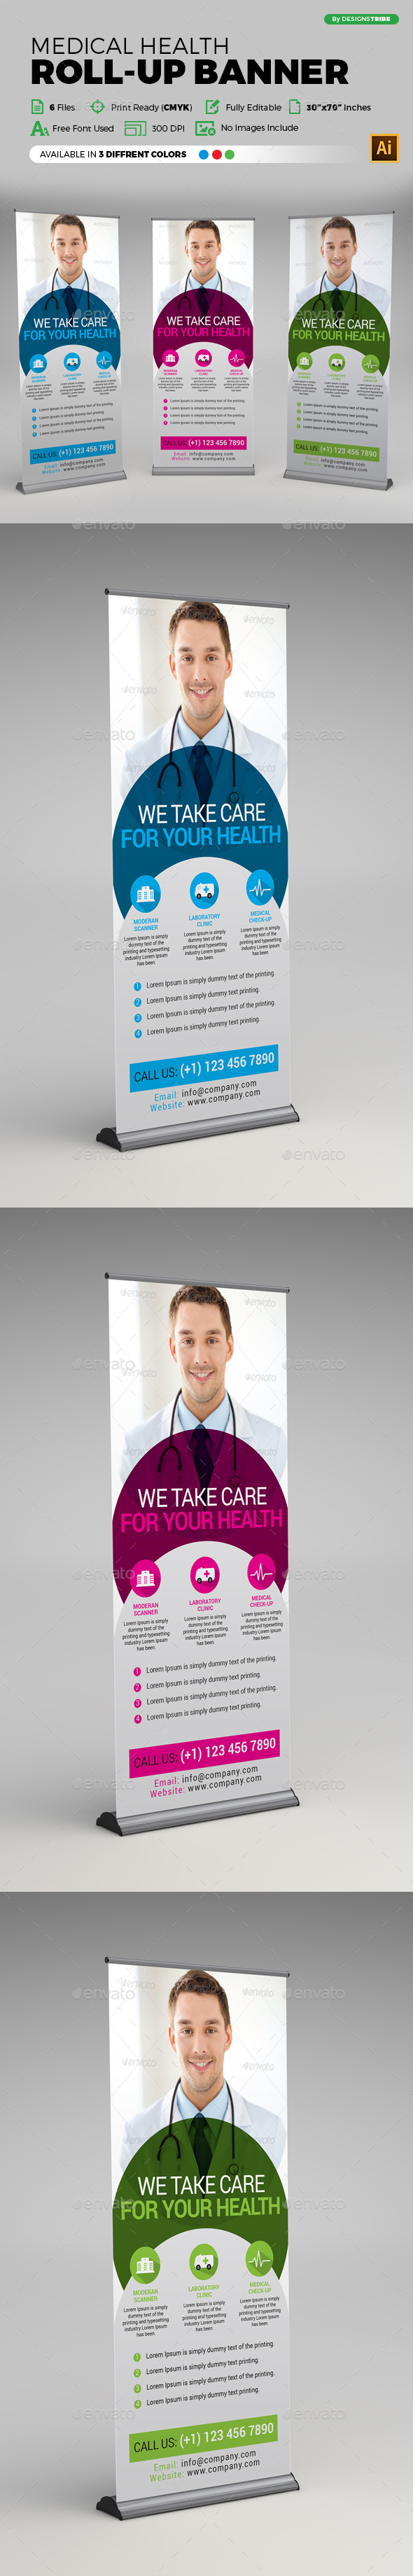 Medical Health Rollup Banner - Signage Print Templates